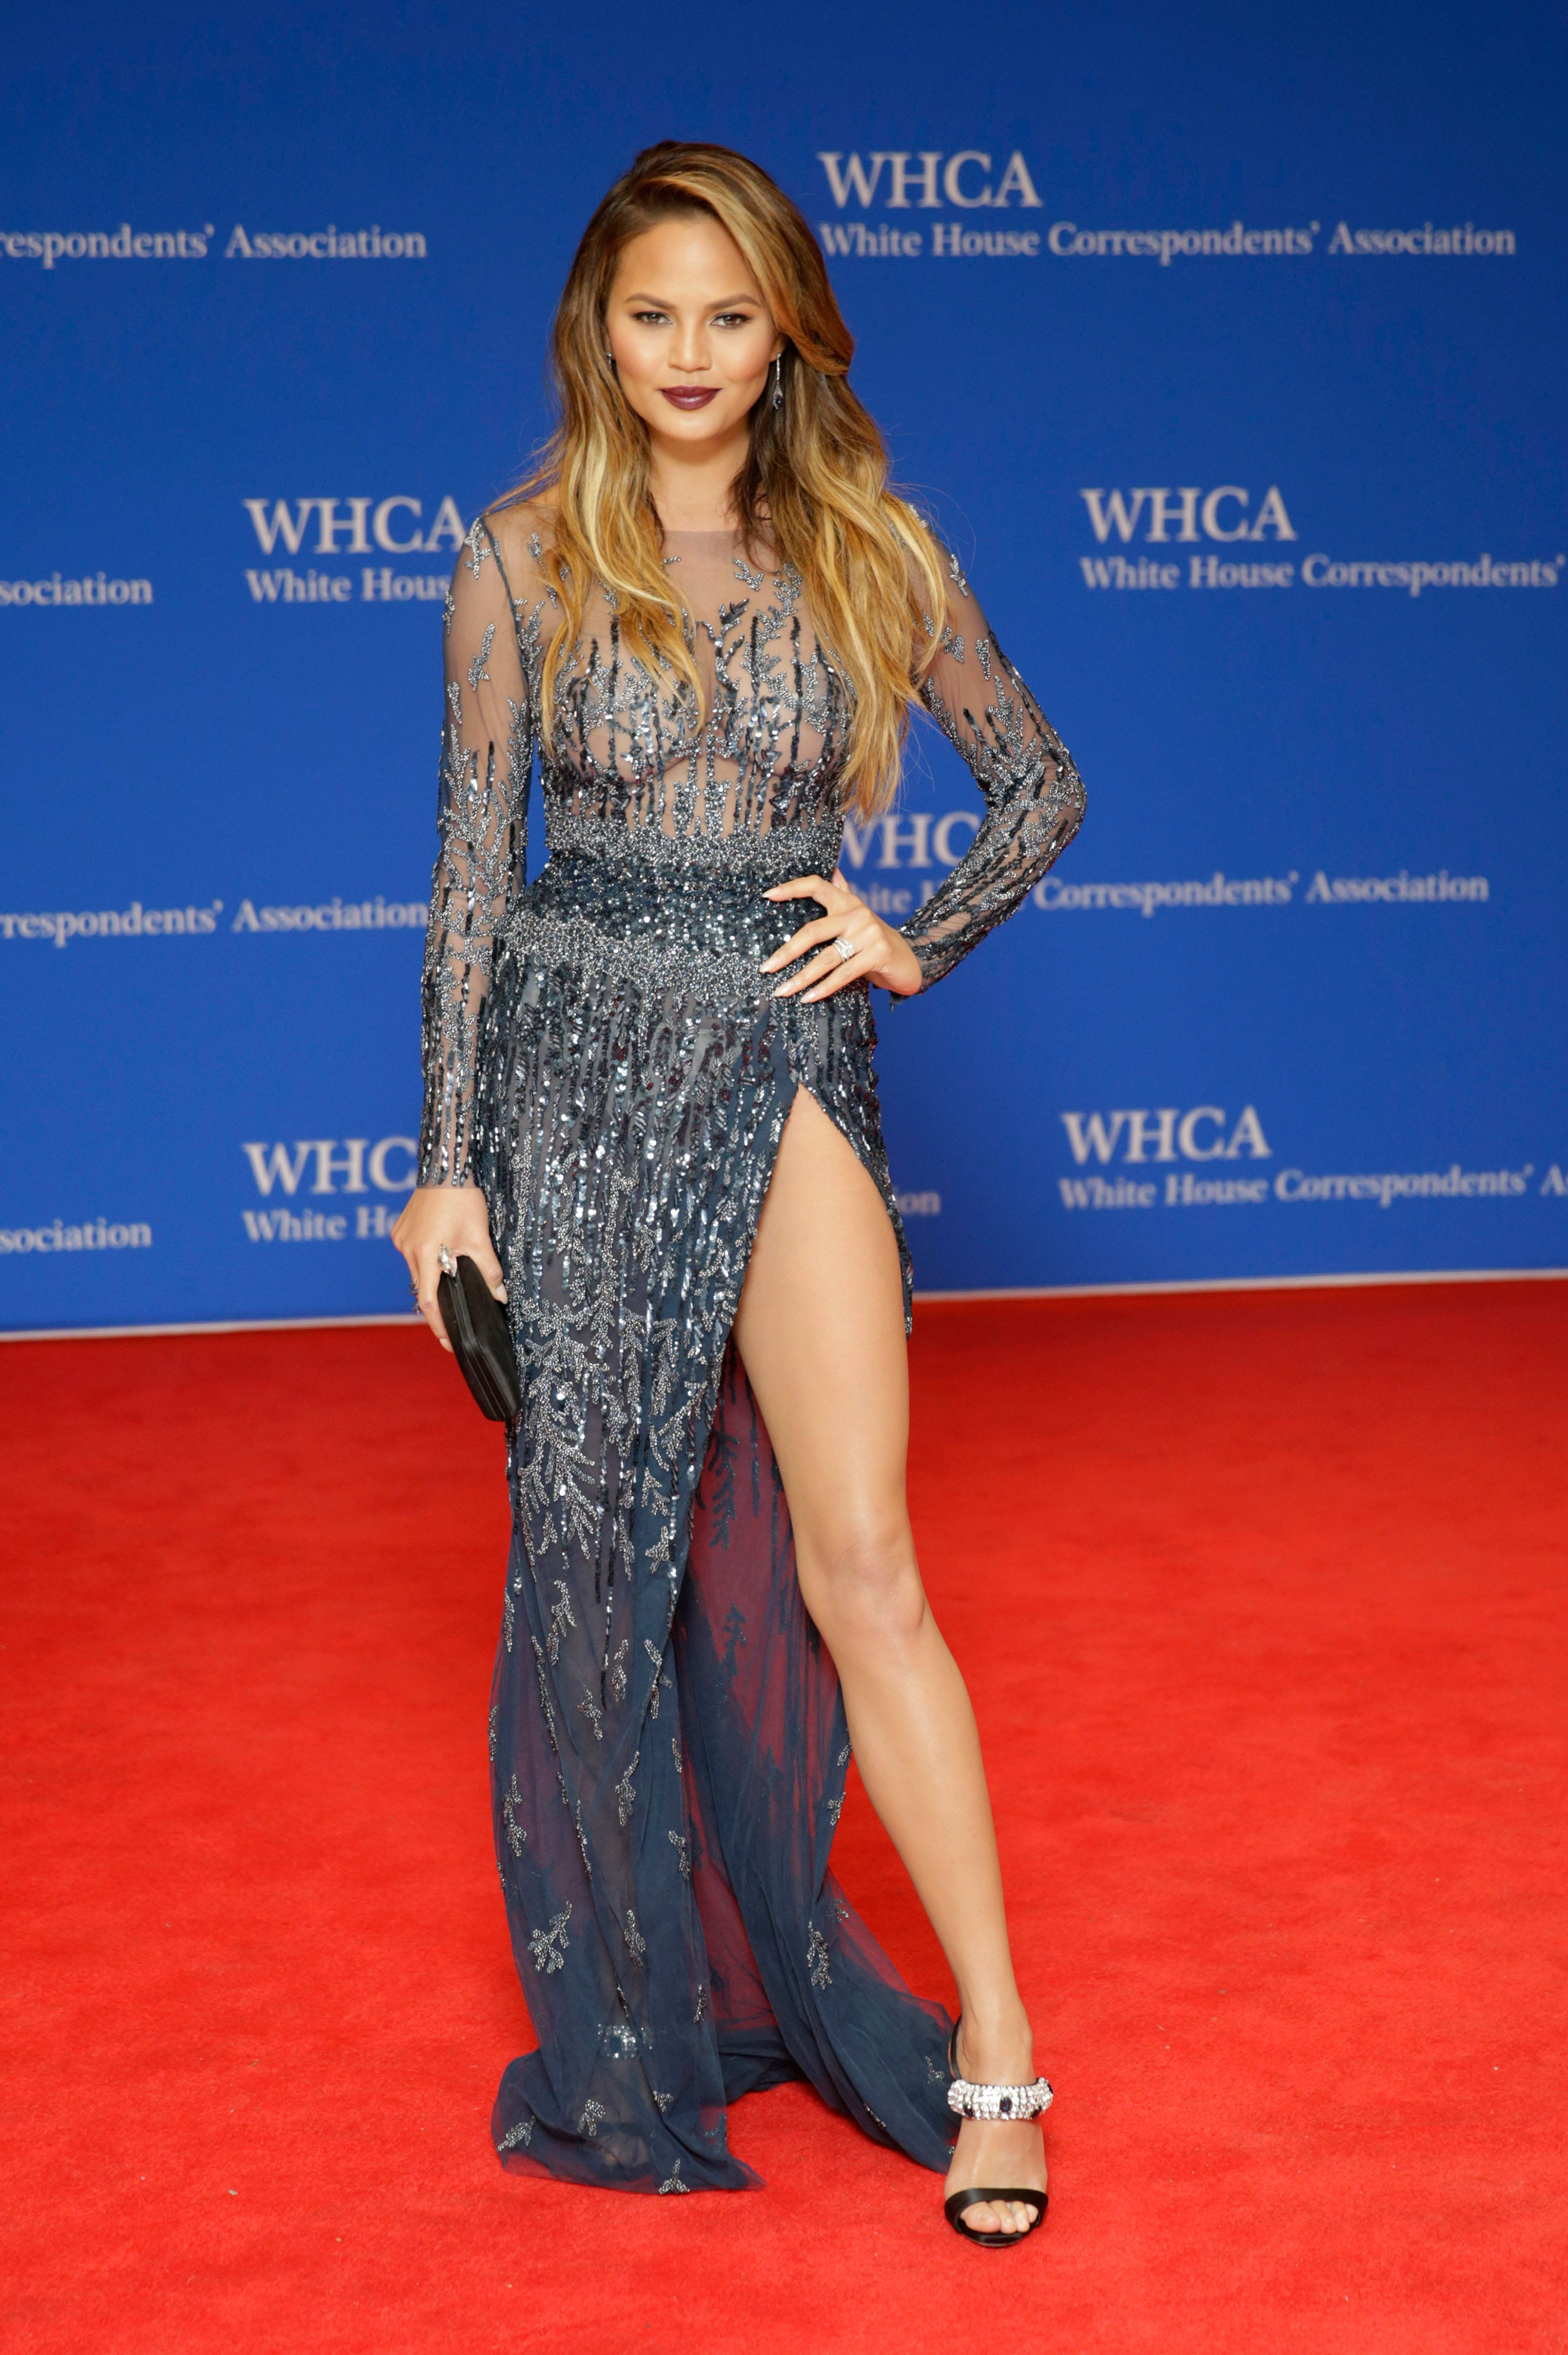 Chrissy Teigen attends the 101st Annual White House Correspondents' Association Dinner.